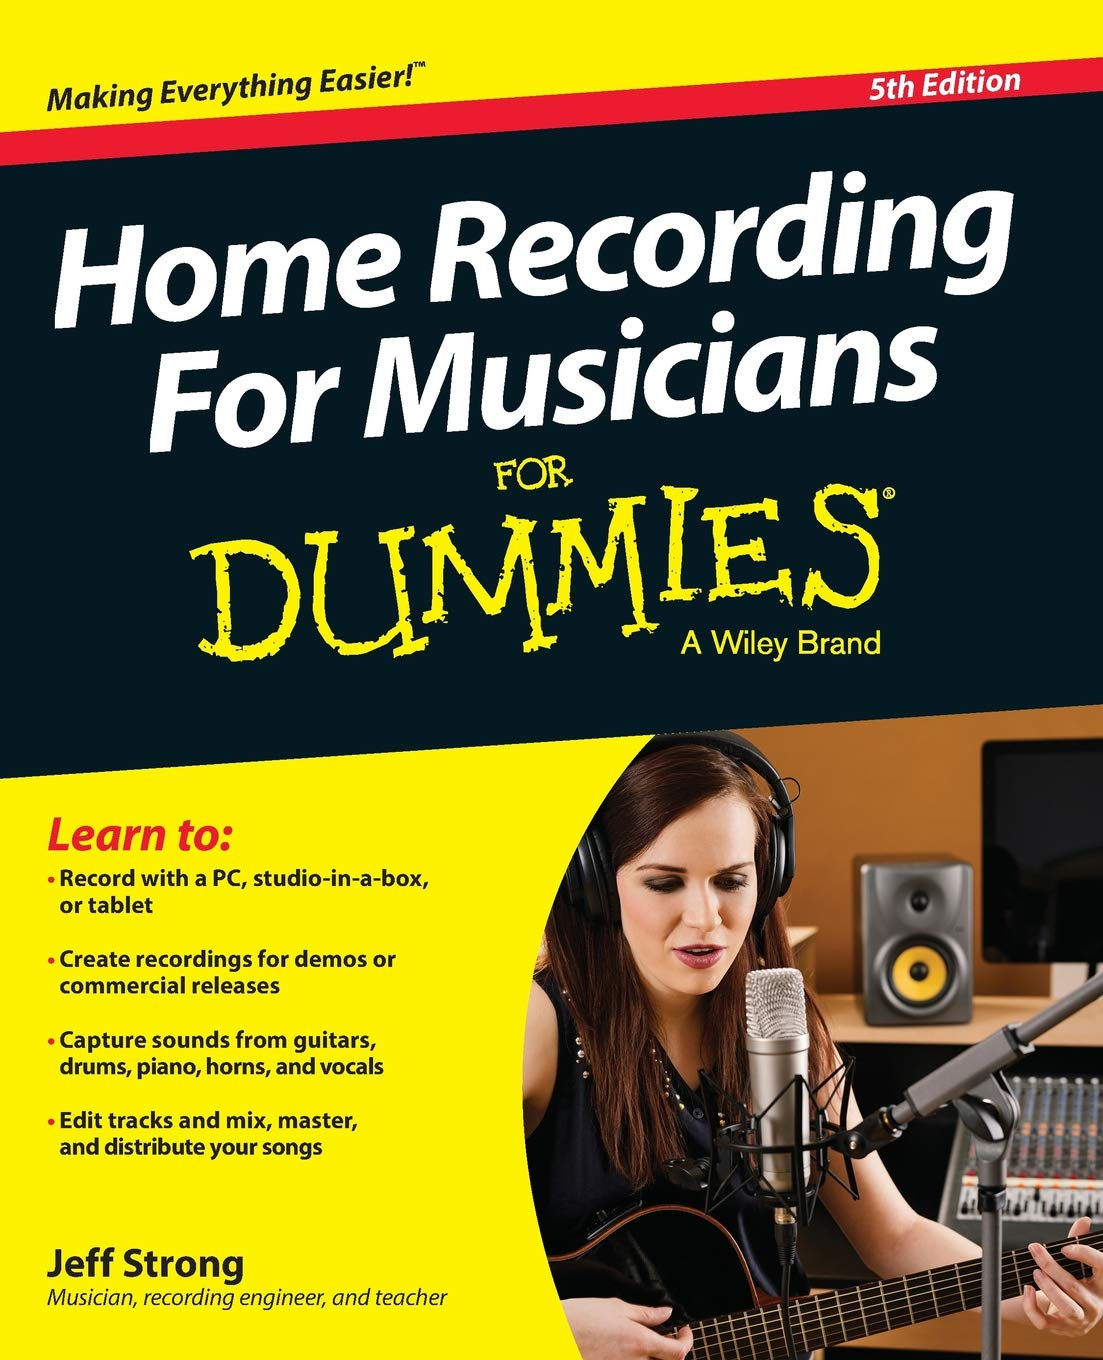 Home Recording Made Easy (Second Edition): Professional Recordings on a Demo Budget (Sound on Sound)